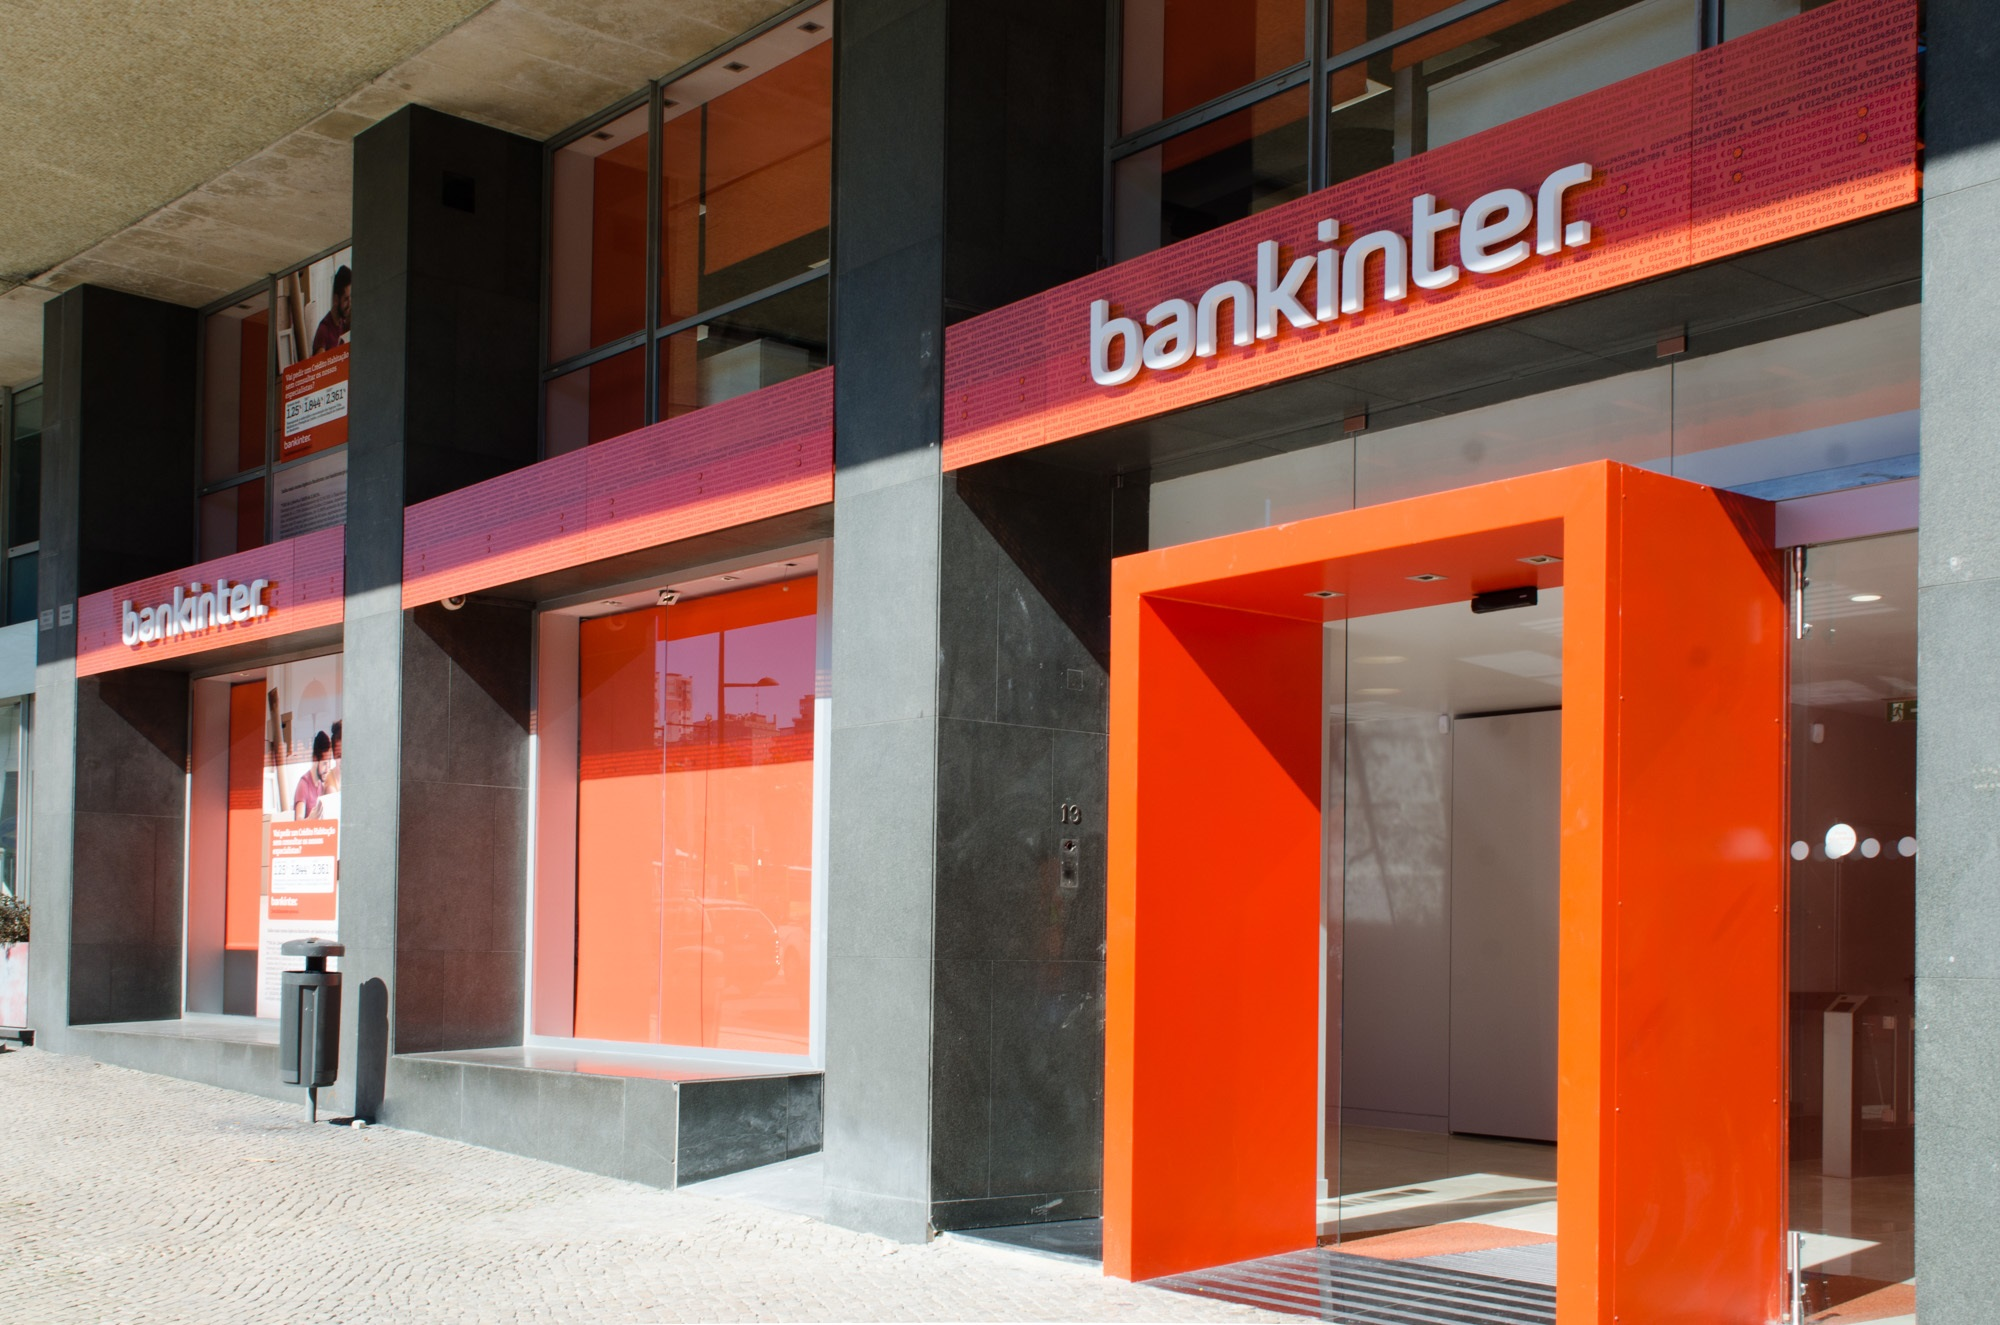 Bankinter ocupa antigo edif cio da edp no marqu s de for Oficinas bankinter